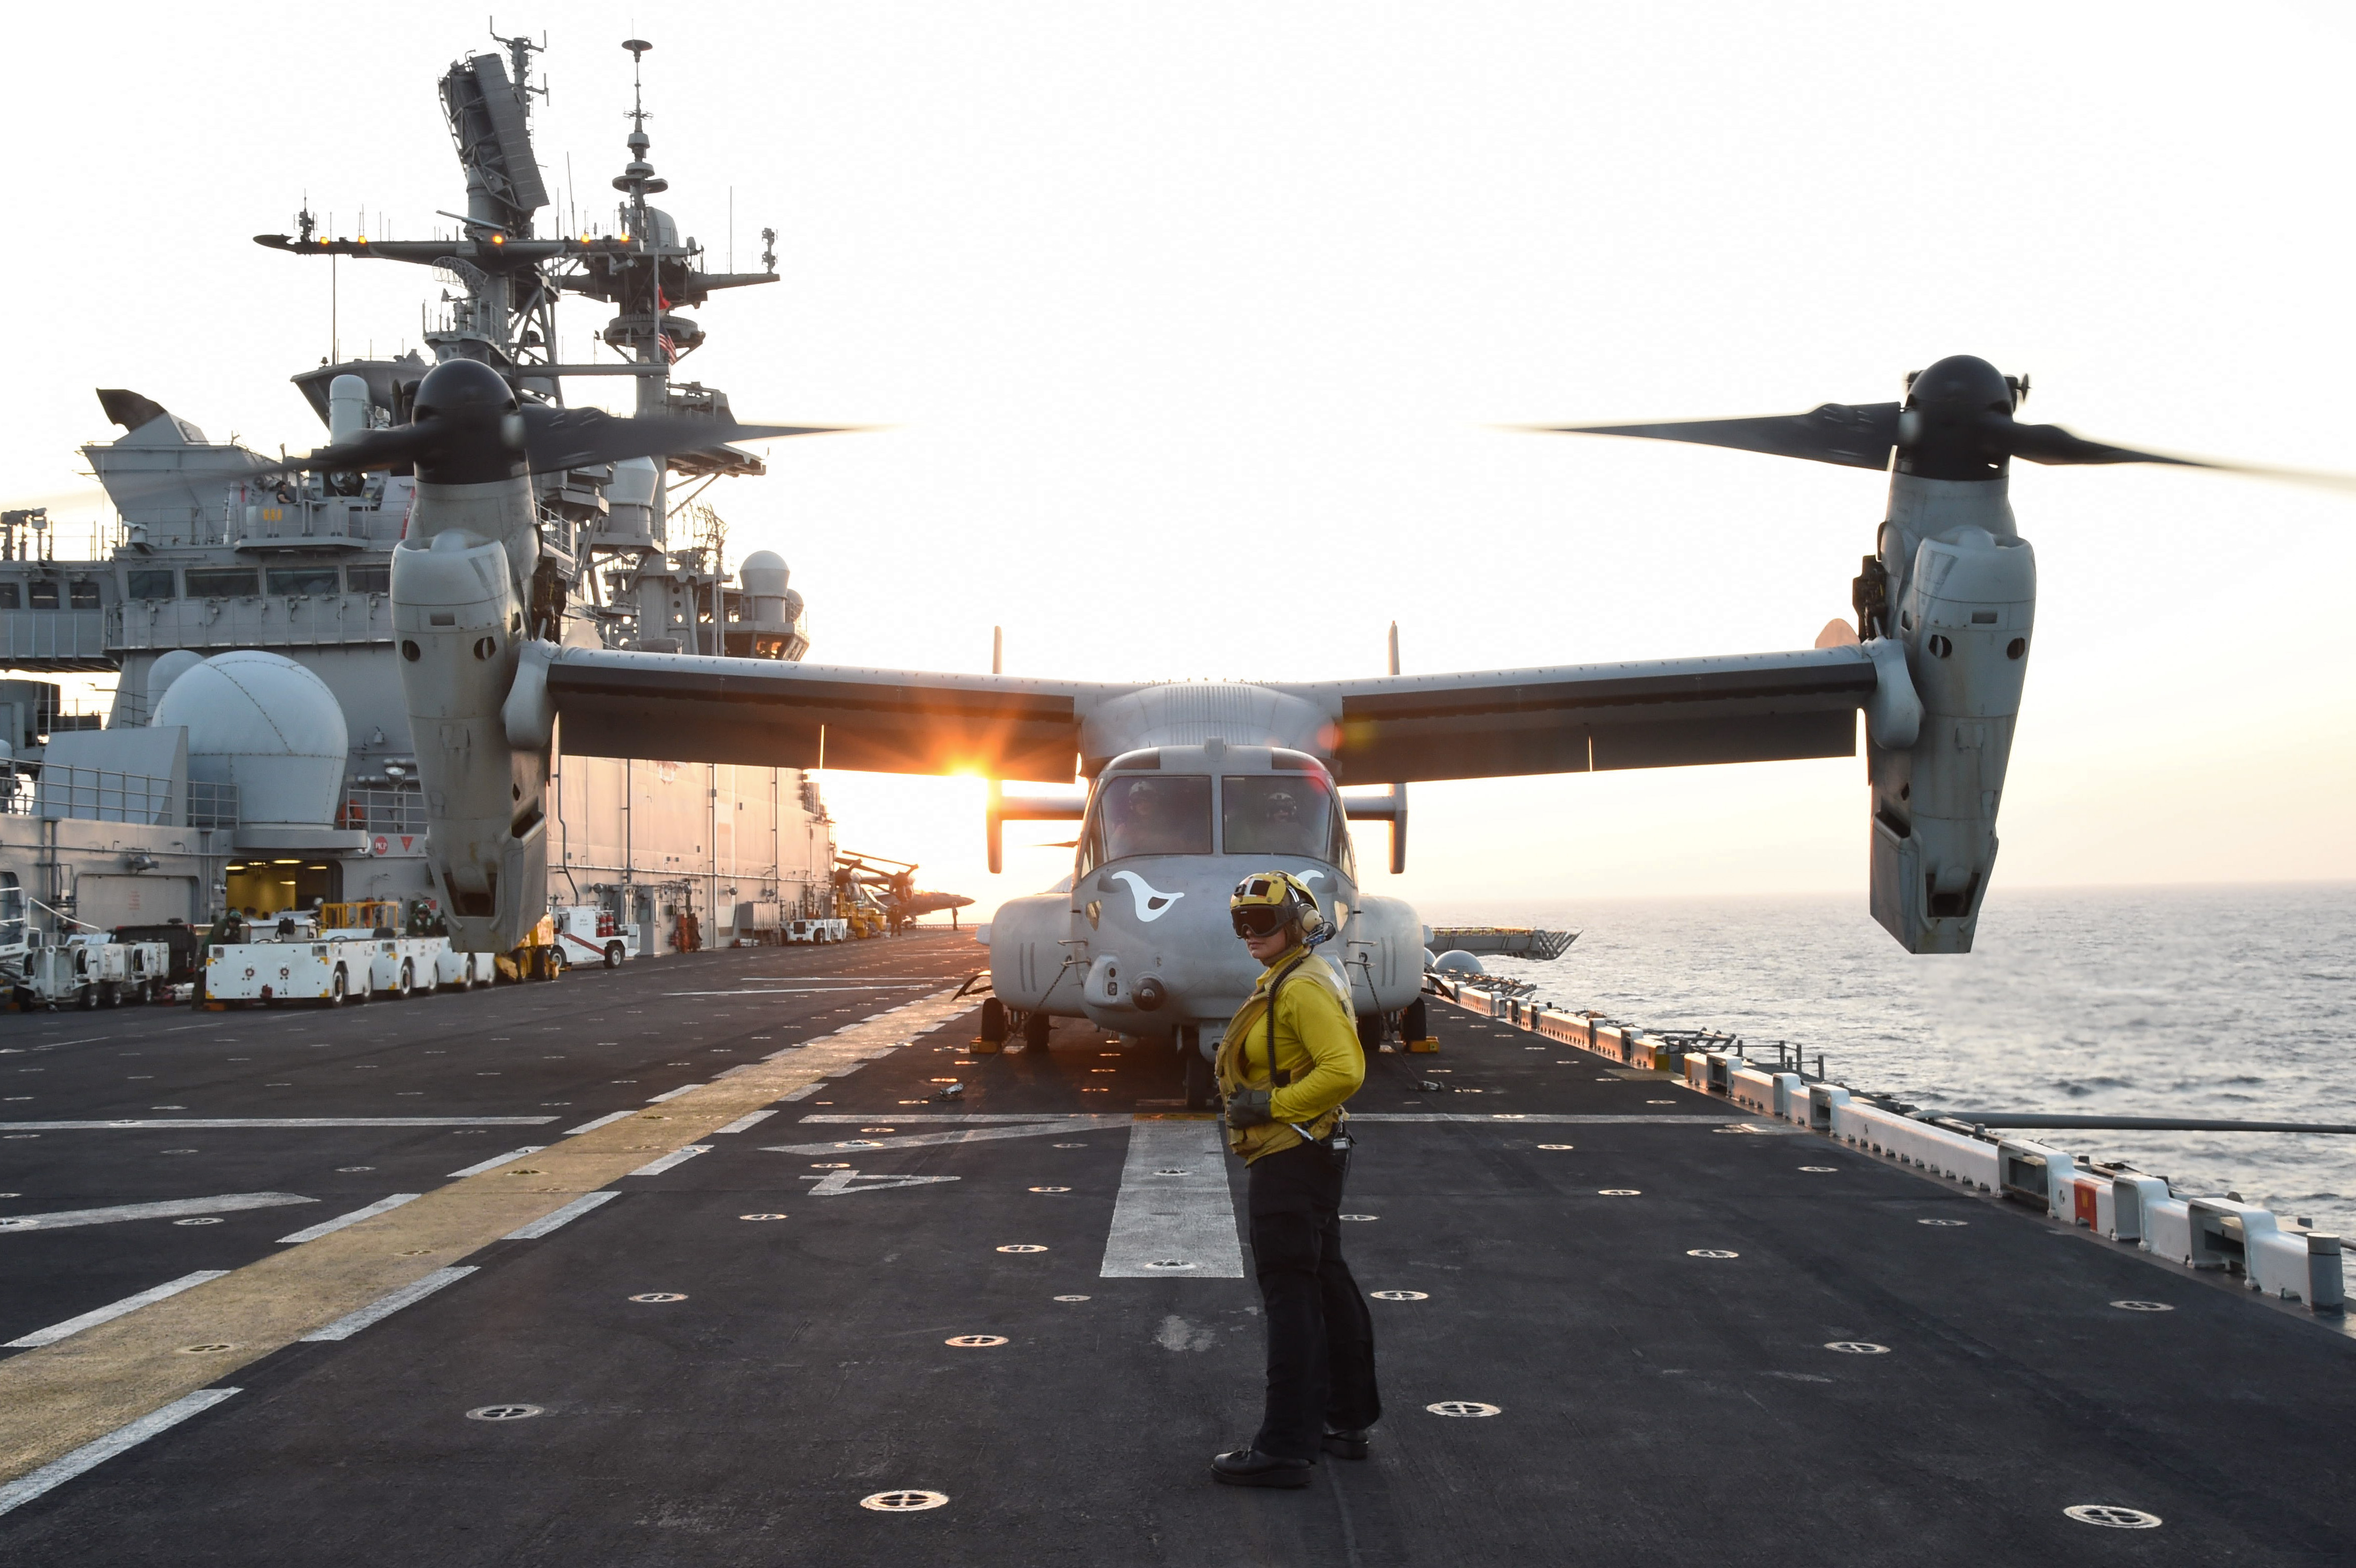 A U.S. Navy Sailor, assigned to the USS Makin Island (LHD 8), prepares to launch an MV-22 Osprey transporting the Commandant of the Marine Corps from the flight deck of the amphibious assault ship Makin Island to Camp Lemonnier, in the Gulf of Aden, Dec. 23, 2016. Sailors involved in flight deck operations wear color-coded apparel that identifies their specialization. (U.S. Air National Guard photo by Staff Sgt. Penny Snoozy)